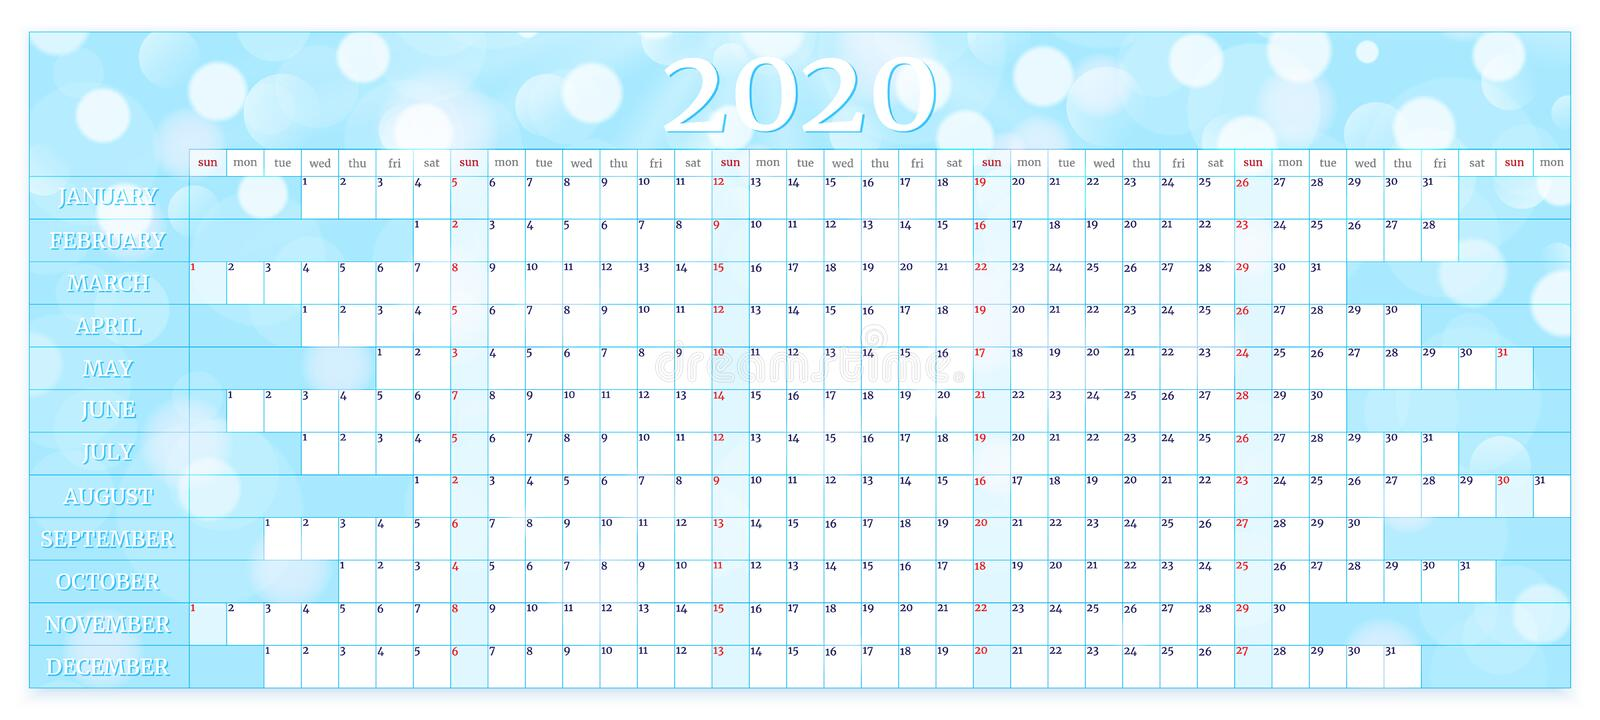 2020 annual calendar. Yearly planner template. Vector illustration royalty free stock image